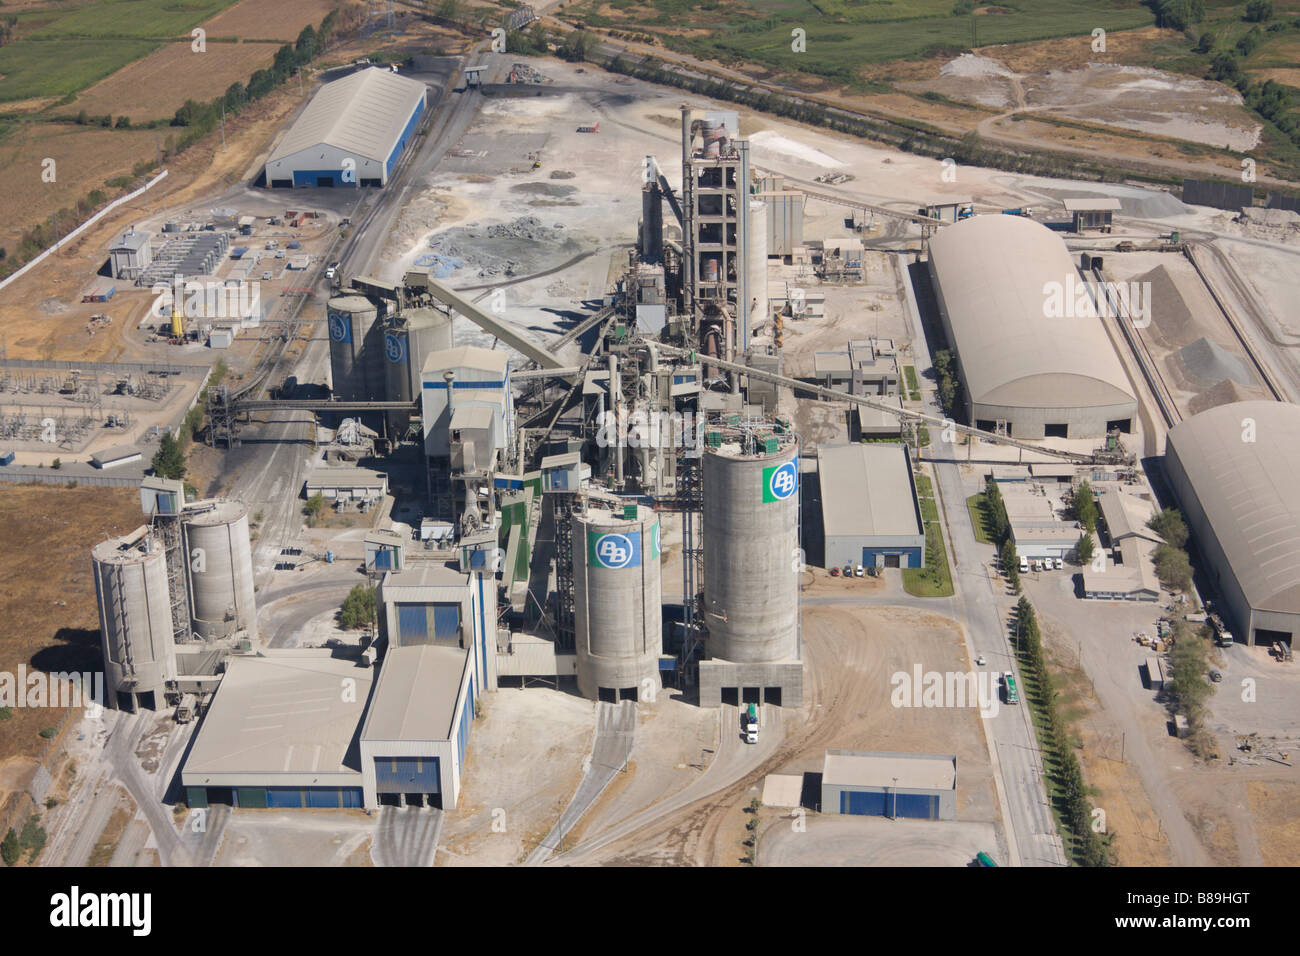 Idaho Cement Plants : Cement plant chile stock photo royalty free image